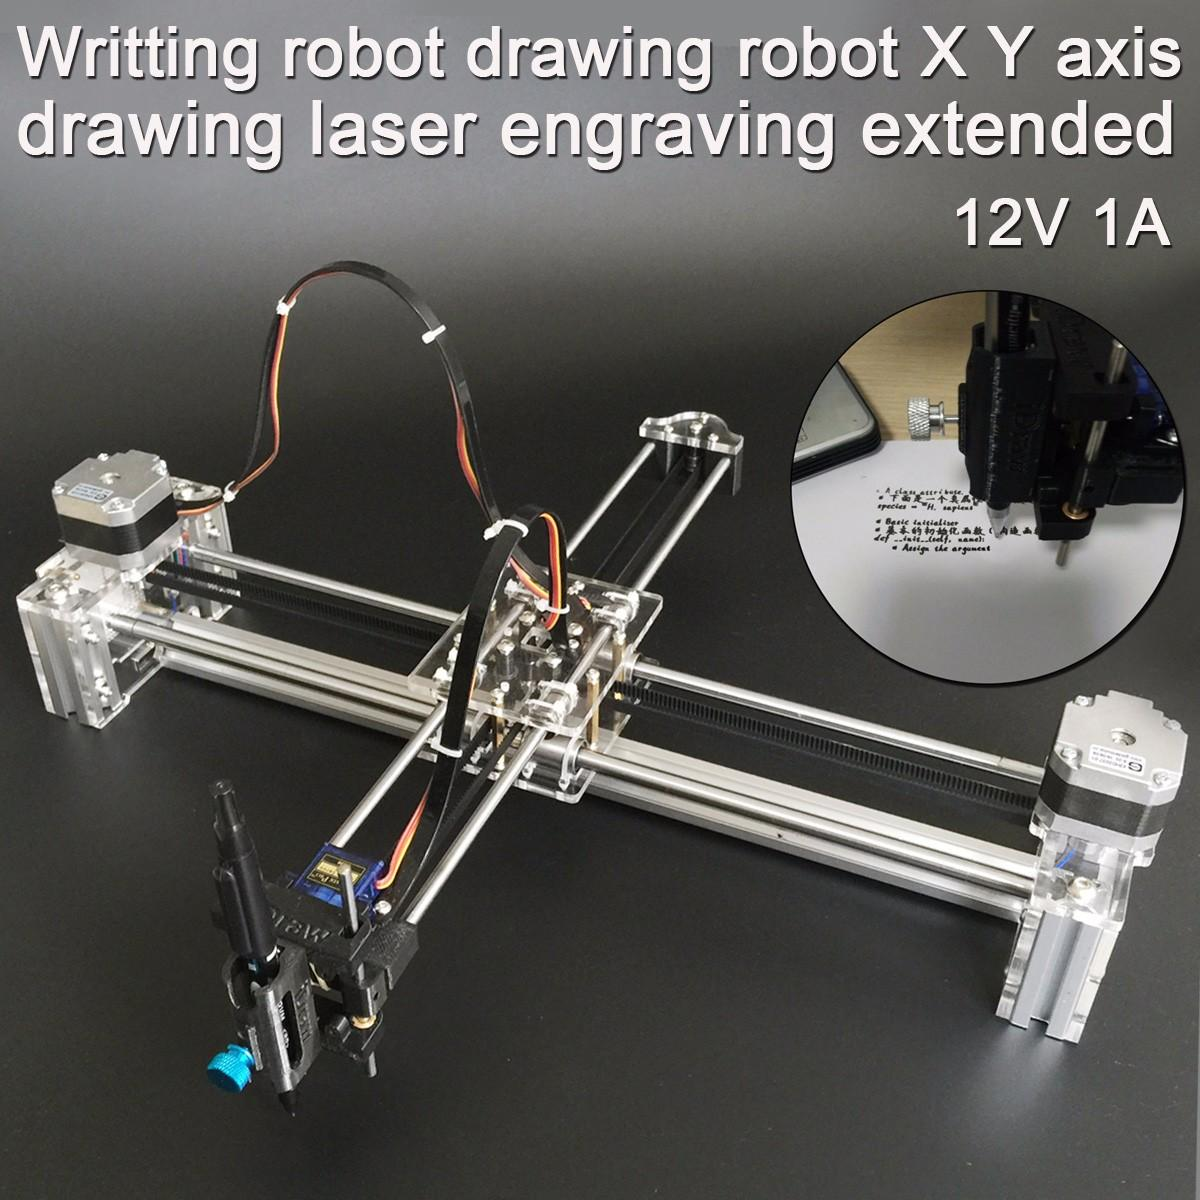 2 Axis Writing Drawing Robot 1A 12V X Y Axis Drawing Laser Engraving Extended Writing Robot Printer Machine